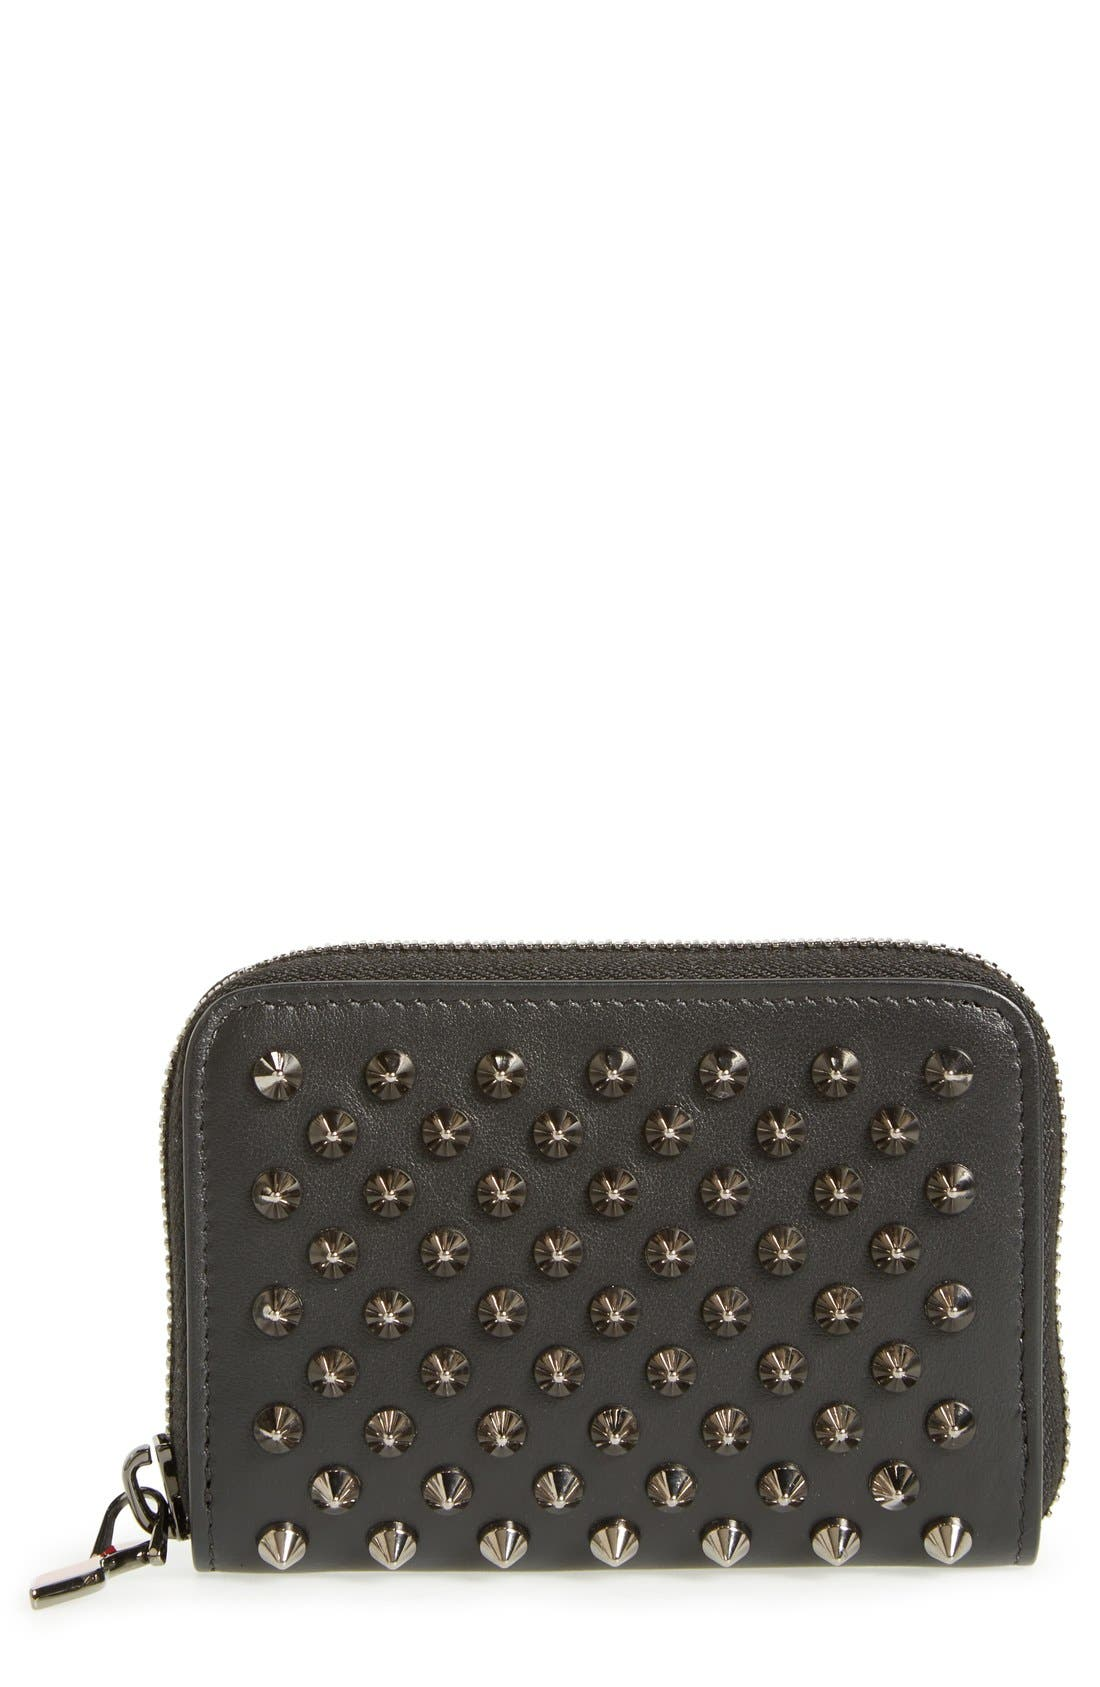 Christian Louboutin 'Panettone' Zip Around Calfskin Leather Wallet